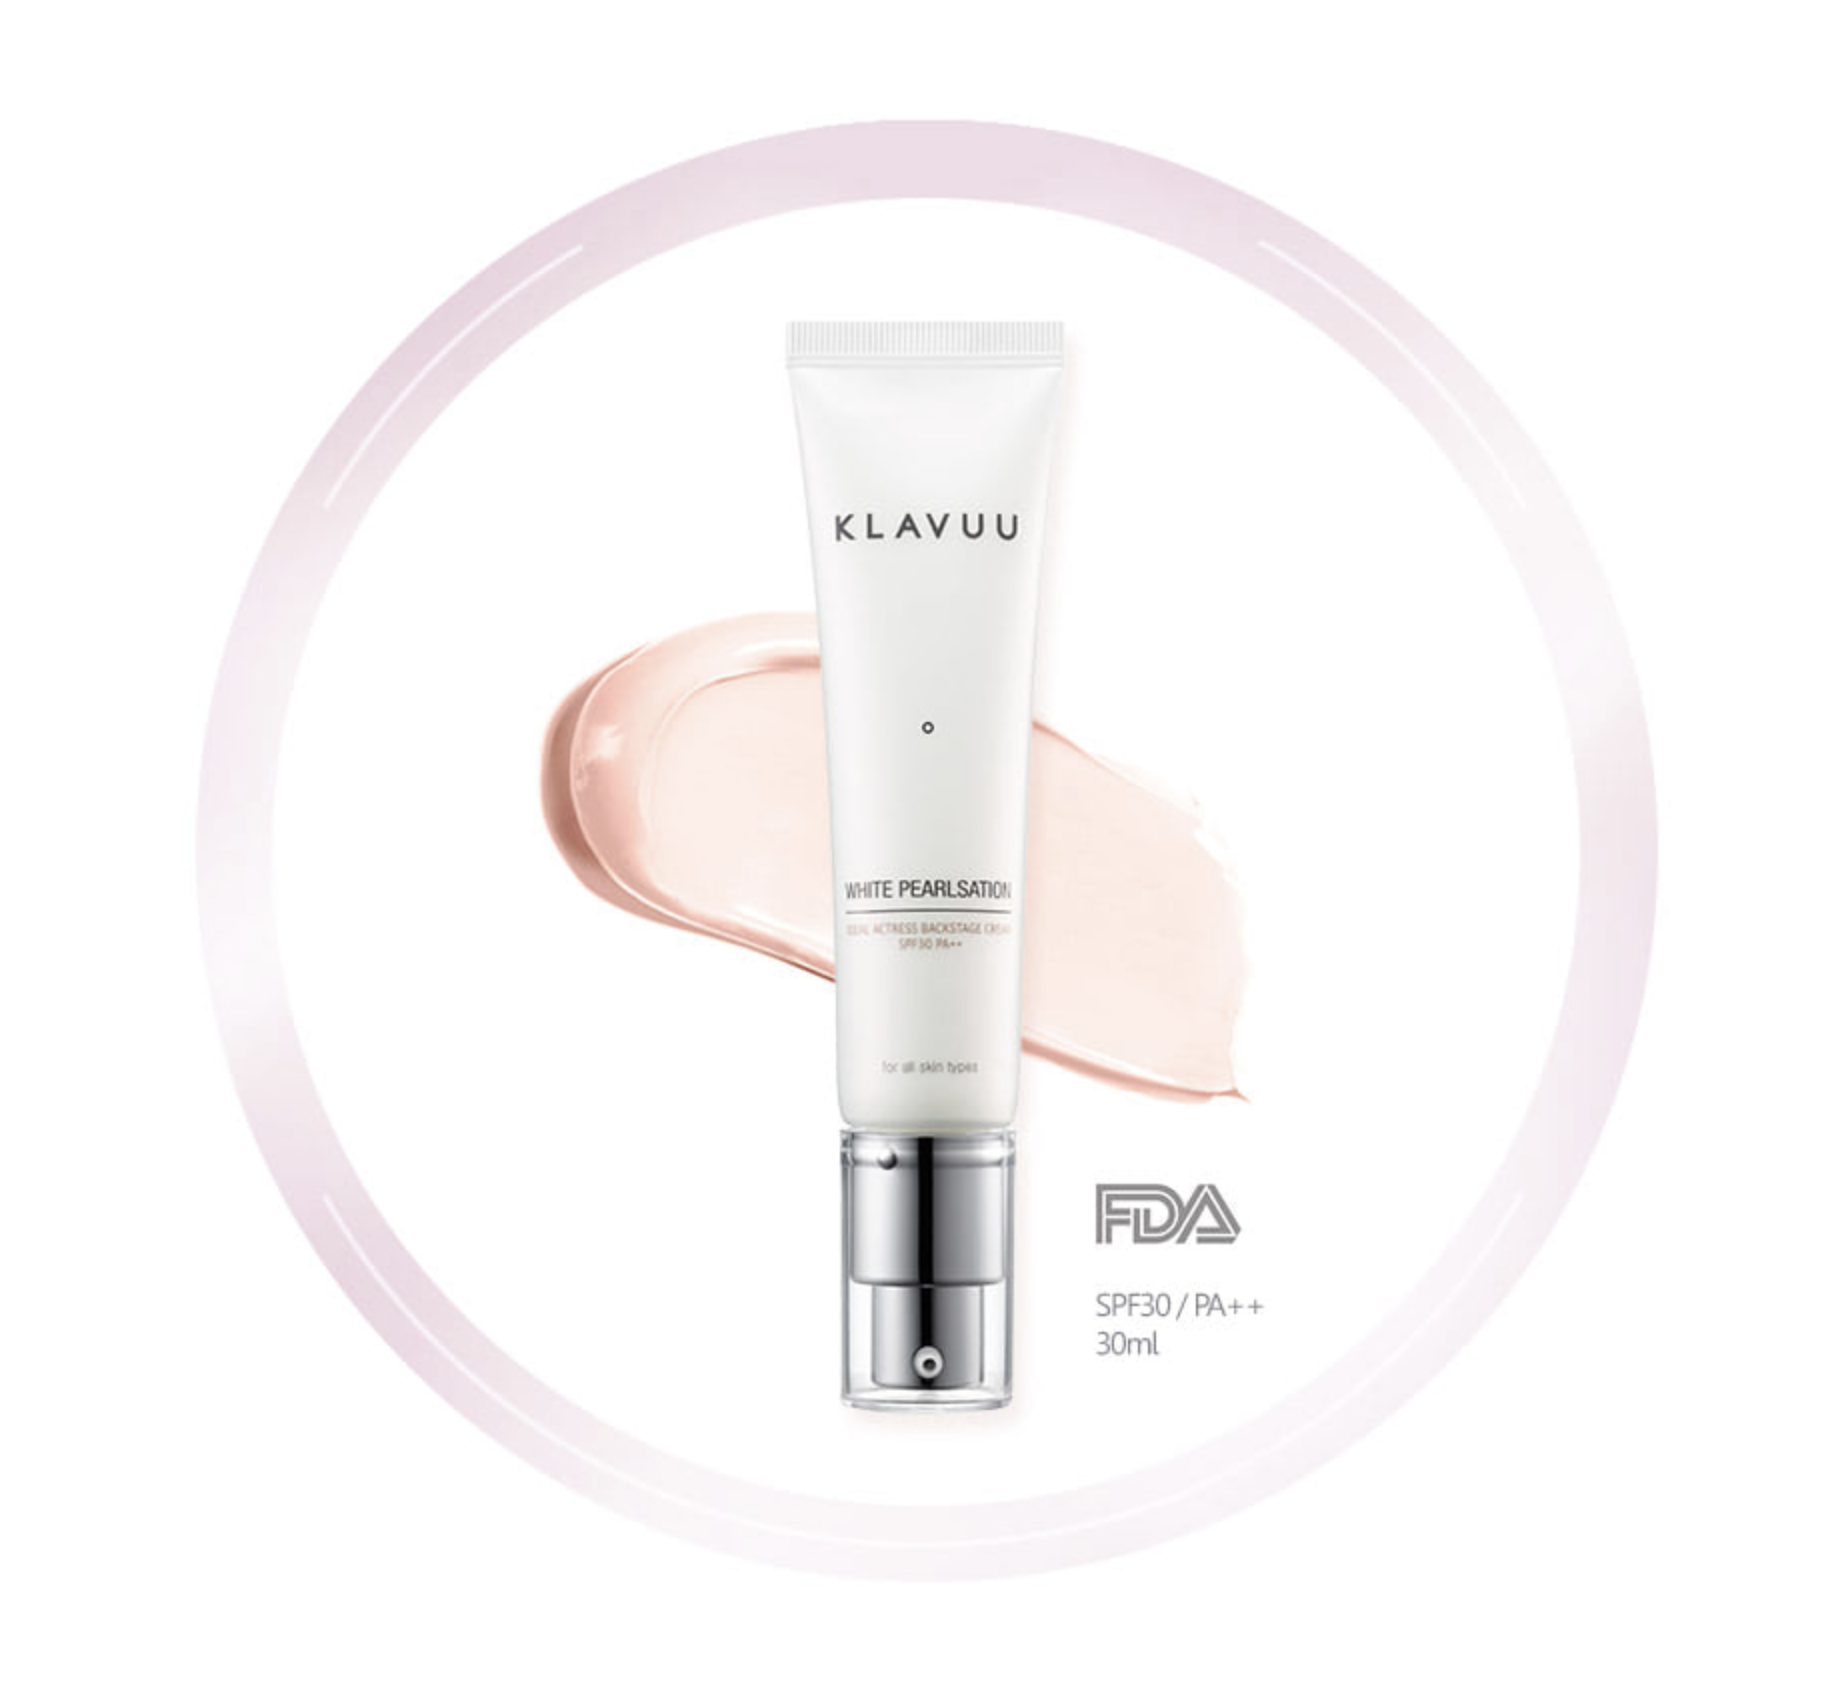 What Cosmetics To Buy In Korea These 30 Products Are Only Sold There Cream 2 1 Premium The Klavuu White Pearlsation Ideal Actress Backstage Is Seriously Doing Some Overtime Here Its A 5 Product And Claims Be Makeup Base